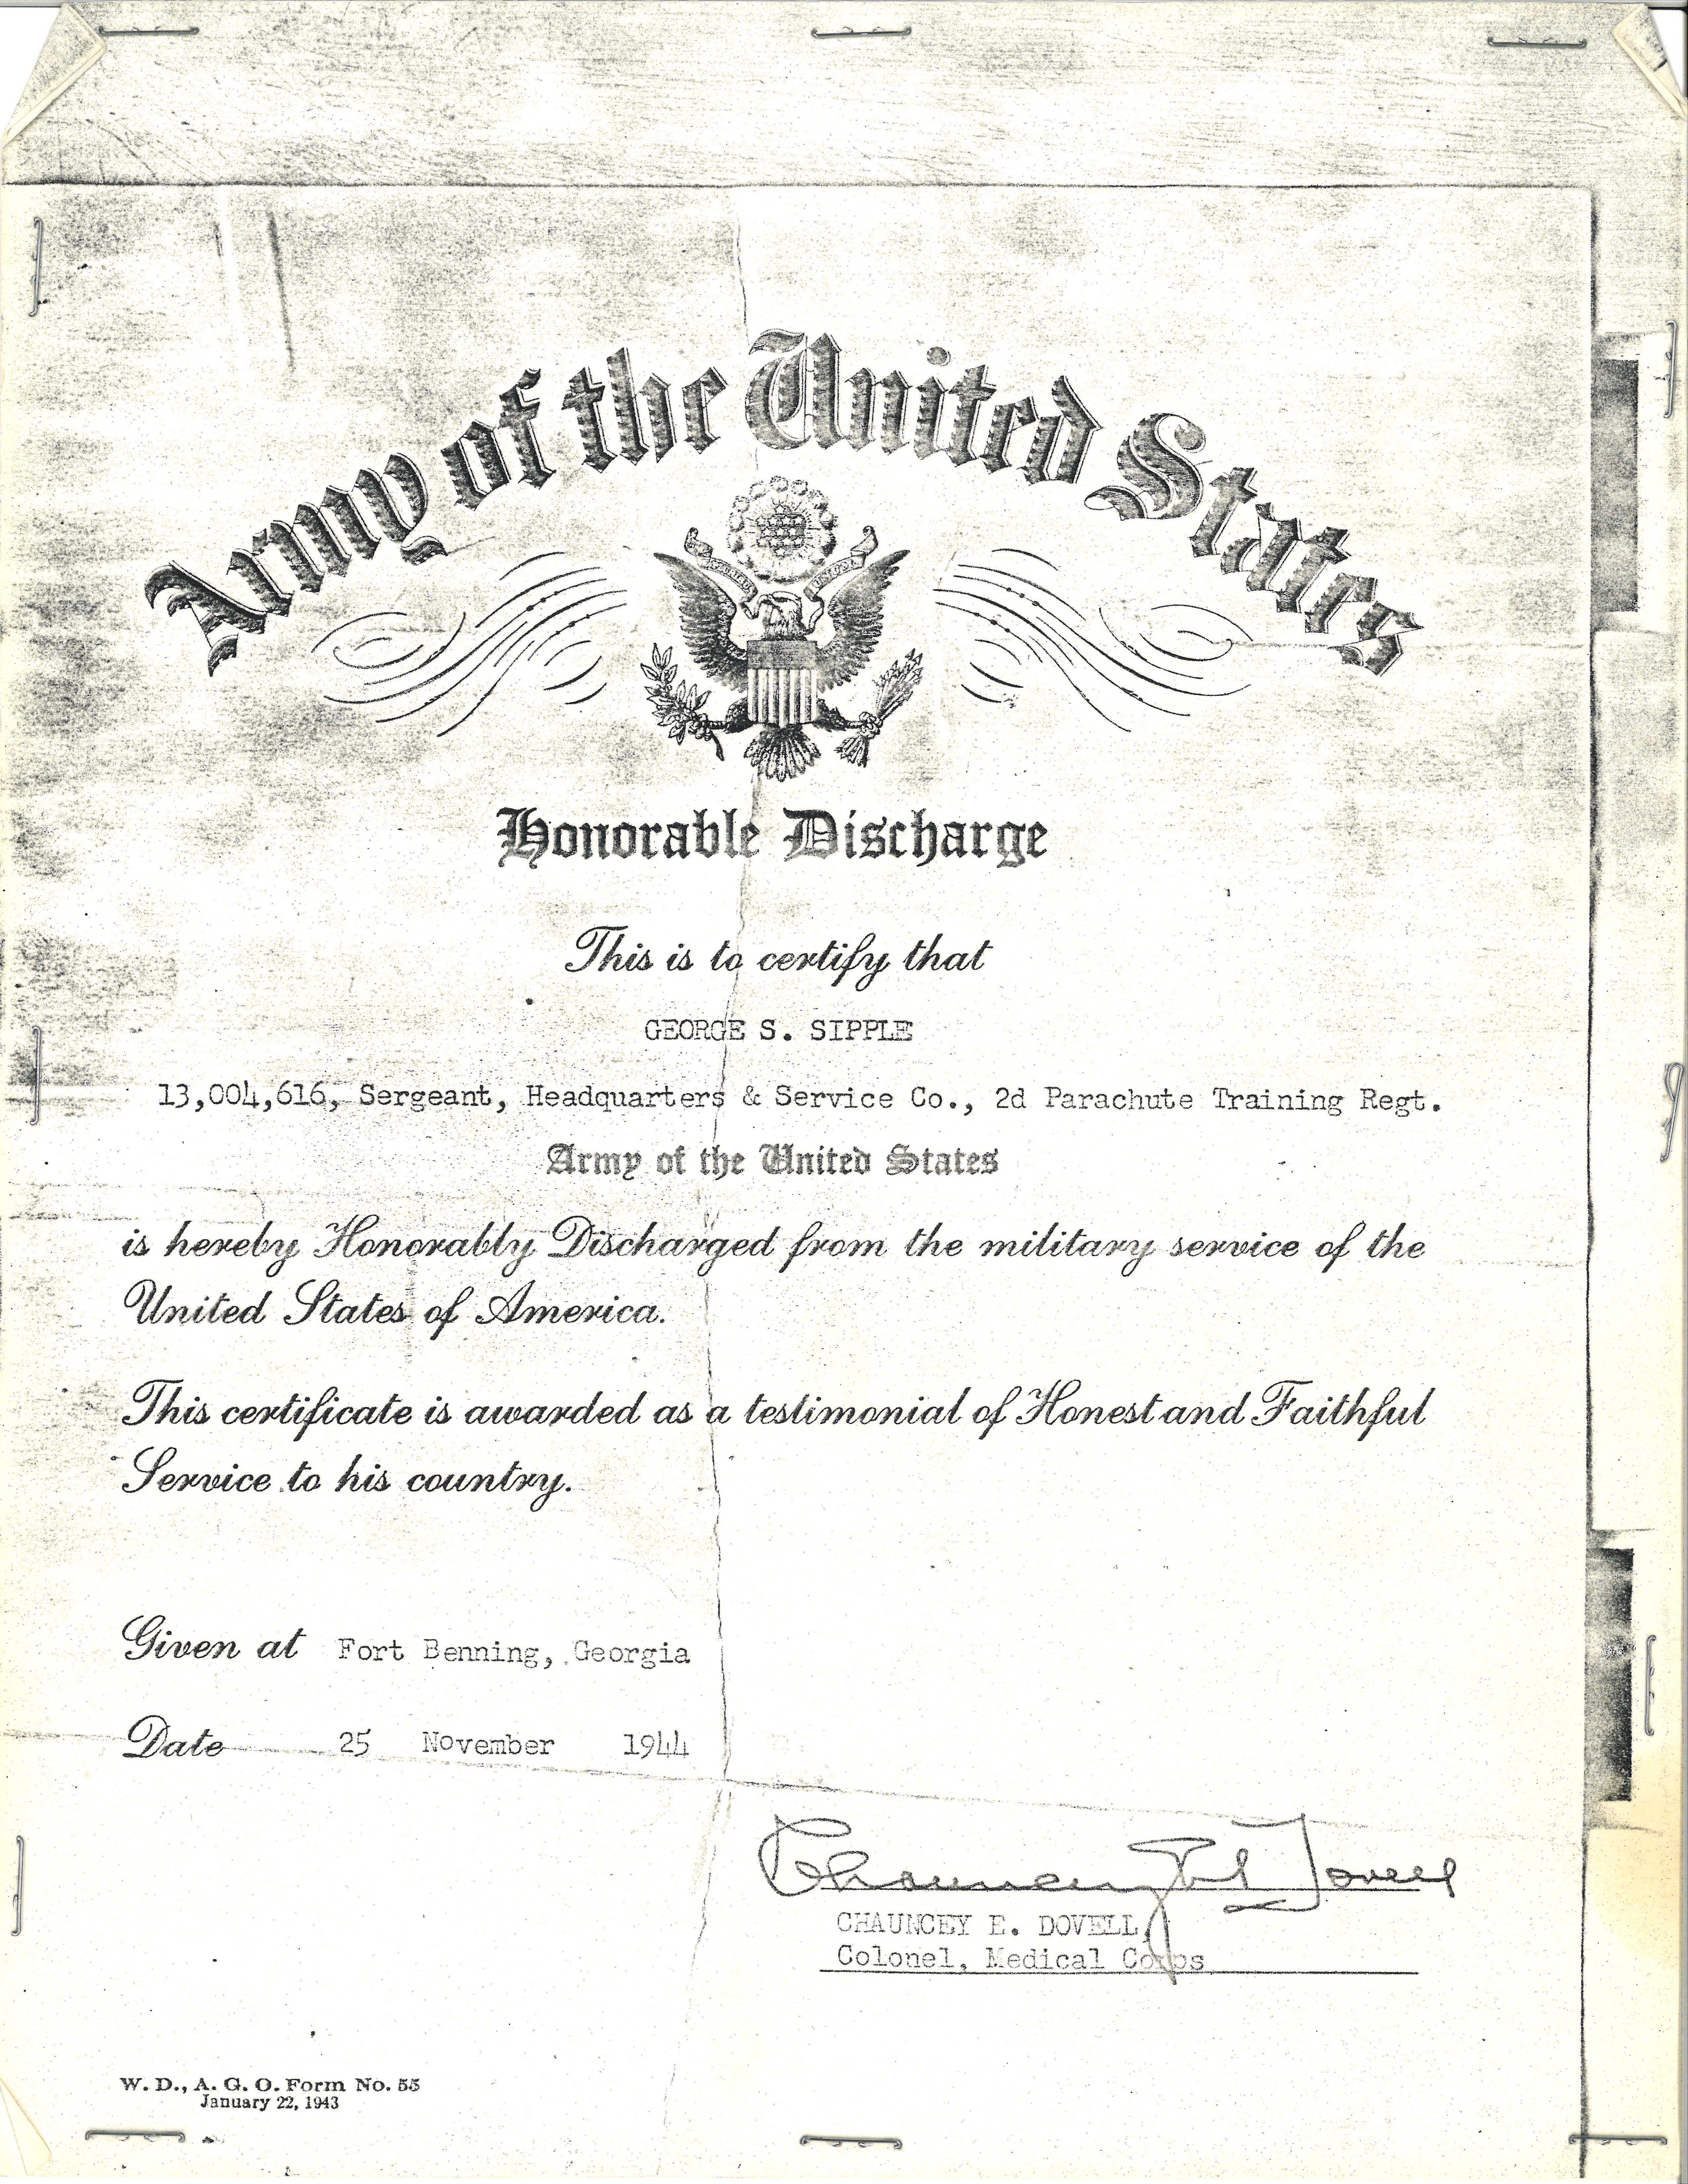 George Sipple's Discharge 1944